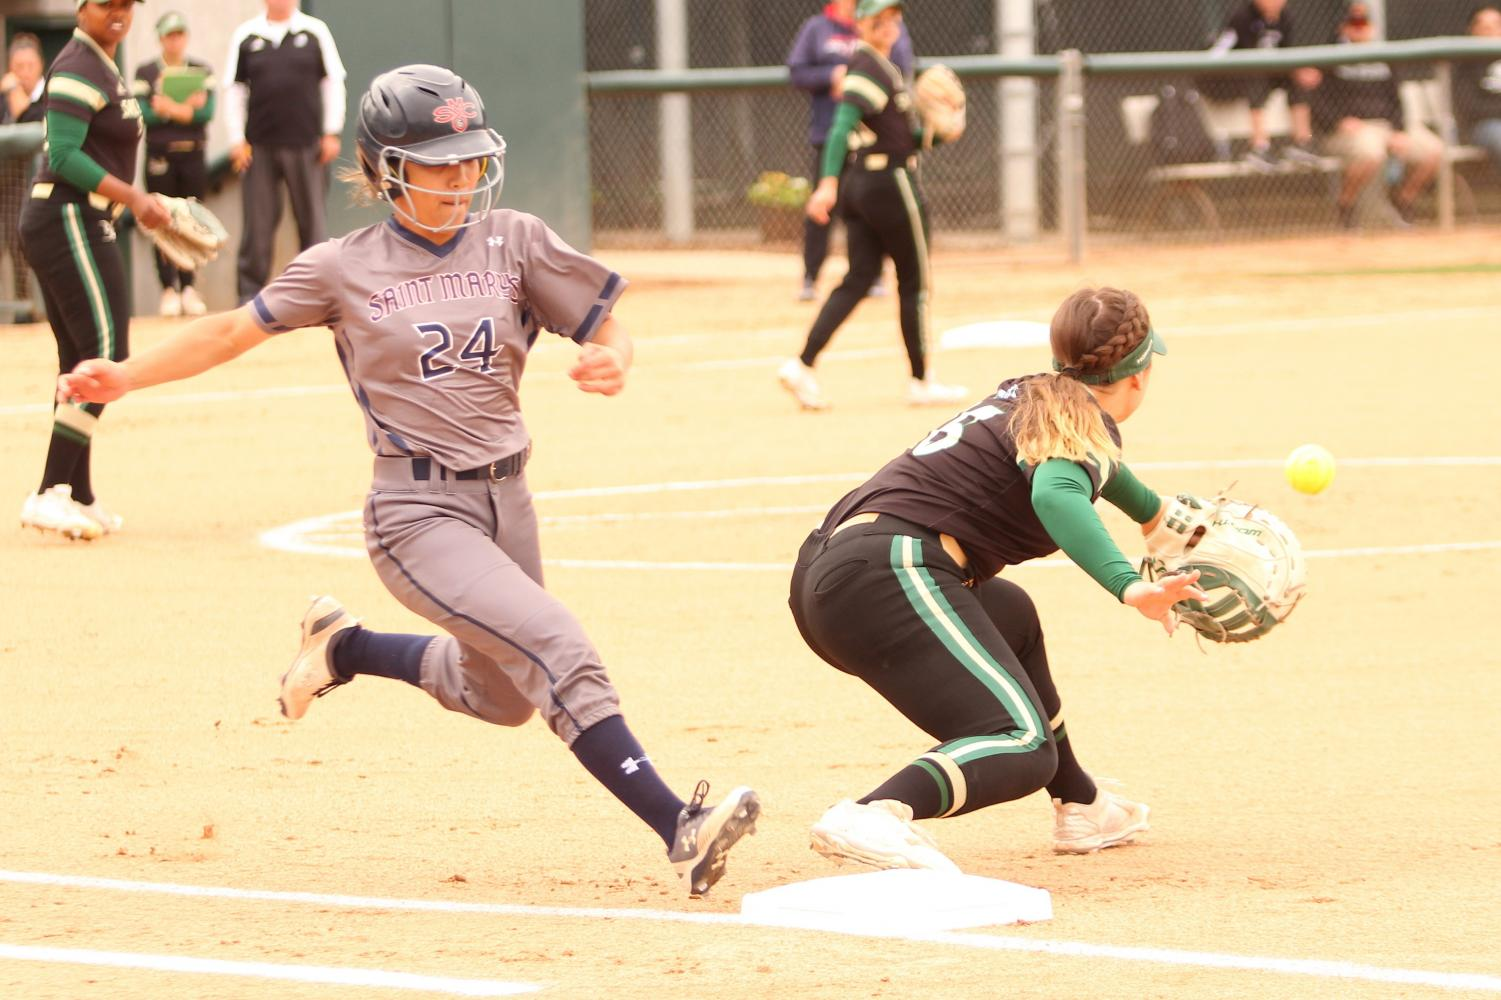 Sacramento State sophomore first baseman Mo Spieth stretches for the ball as Saint Mary's College freshman outfielder Kimiko Zapanta reaches safely at first base at Shea Stadium on Wednesday, April 18, 2018. The Hornets lost to the Gaels 1-0.